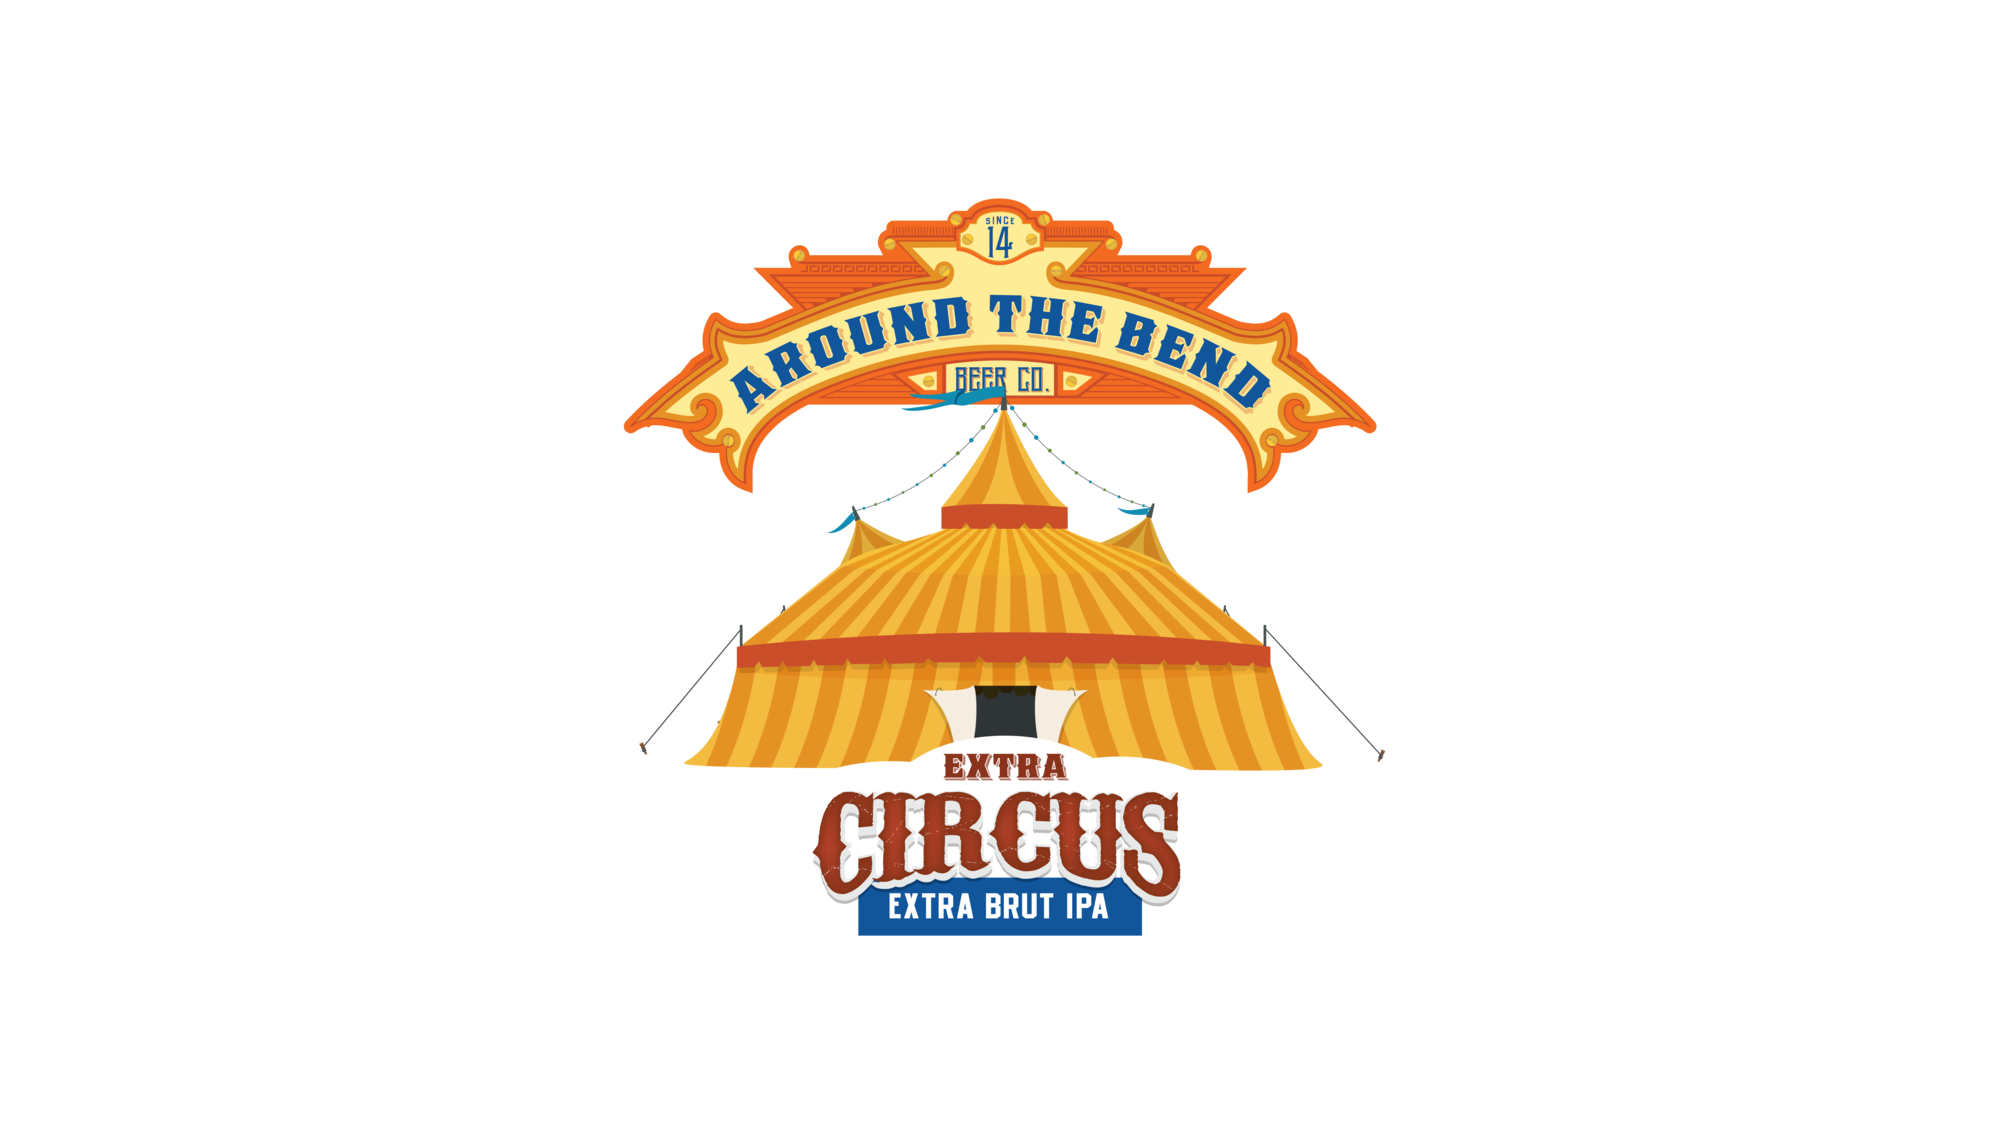 Around the Bend Extra Circus beer Label Full Size